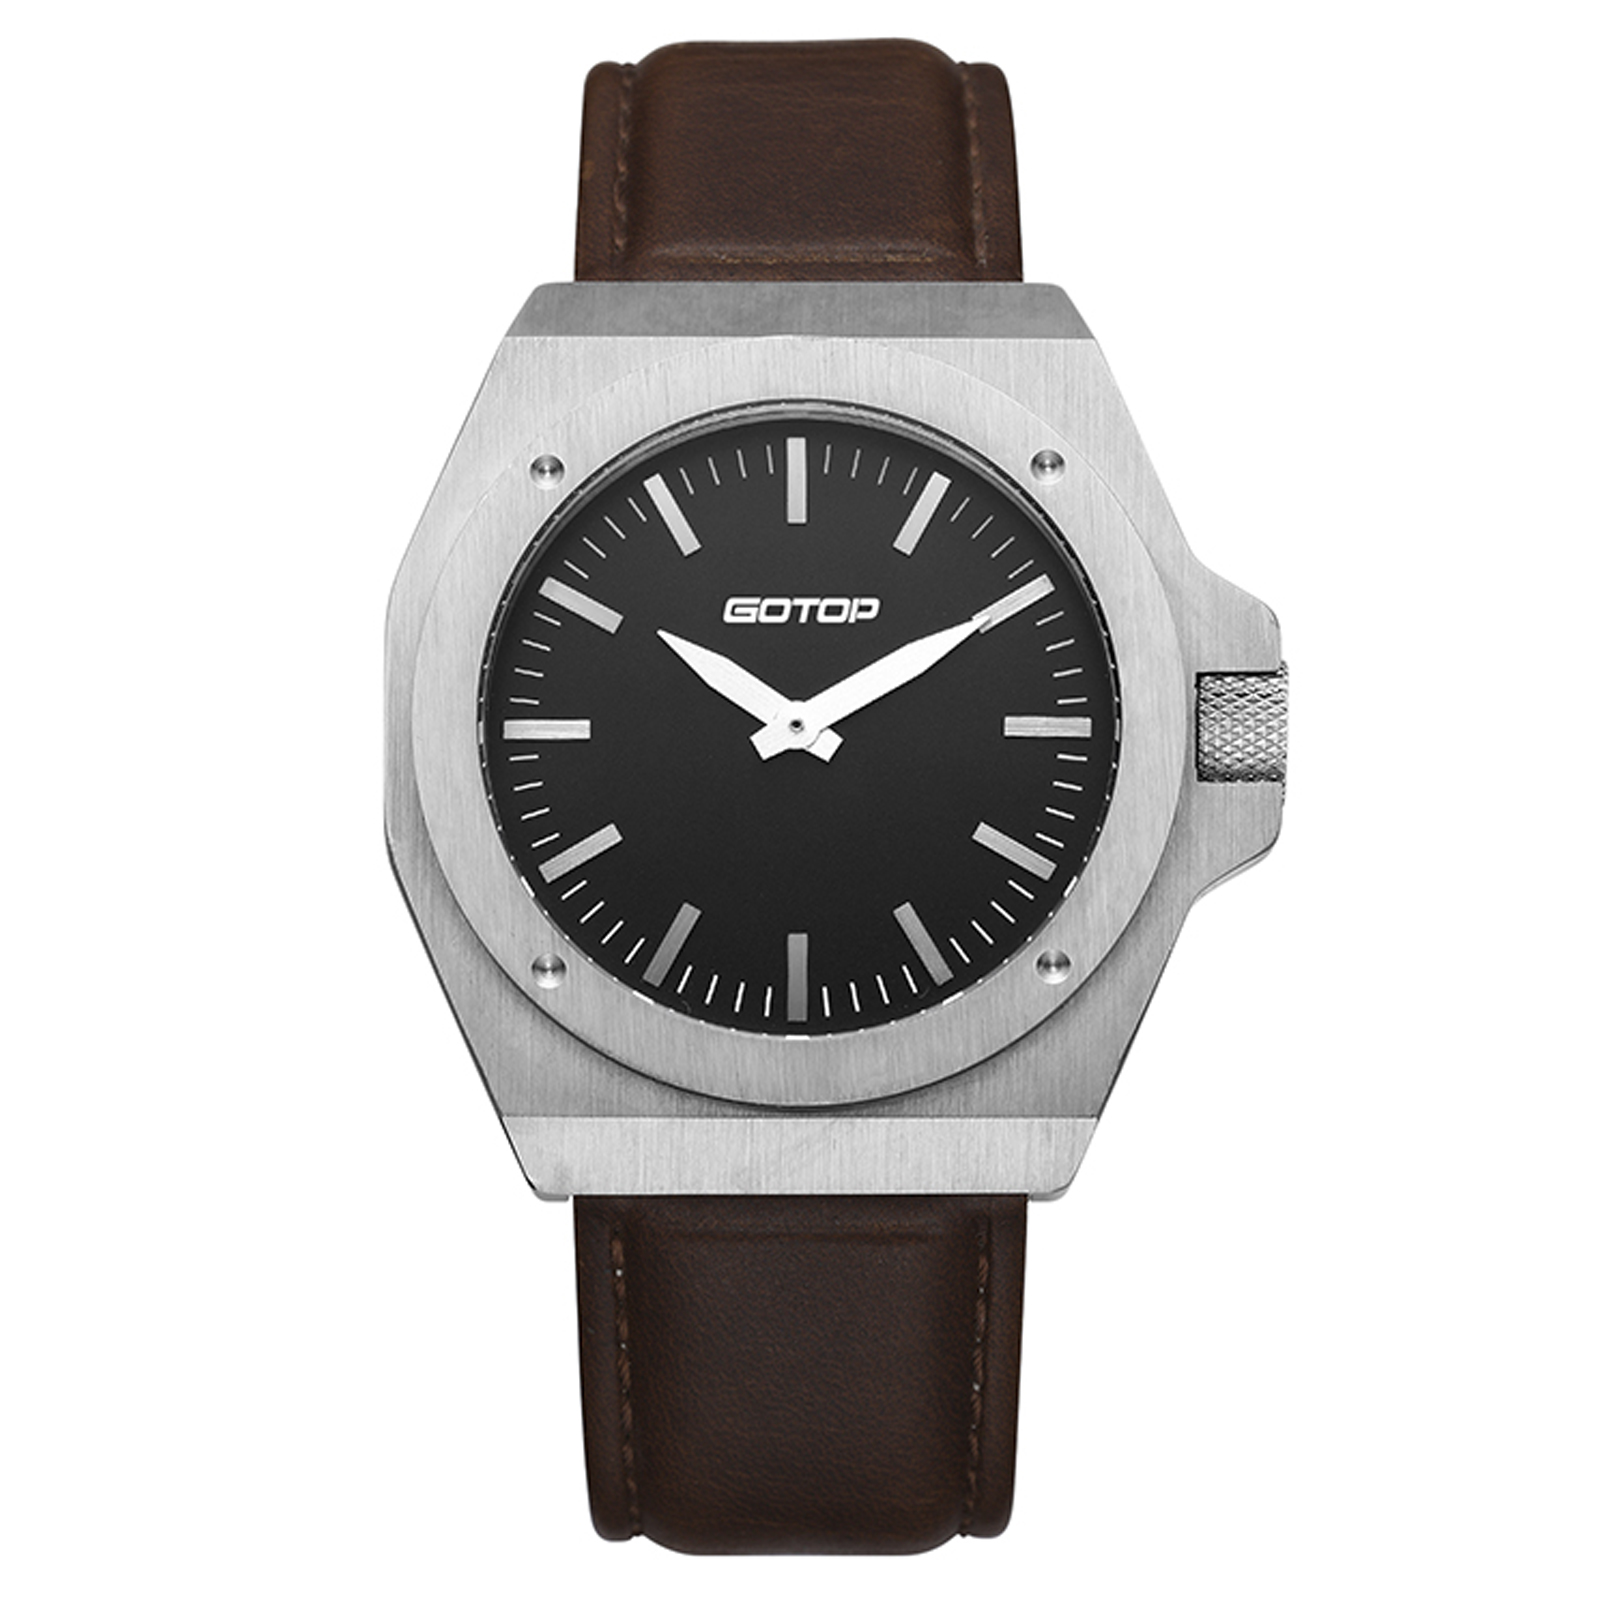 Stainless-Steel Men's Watch With Brown Leather Strap